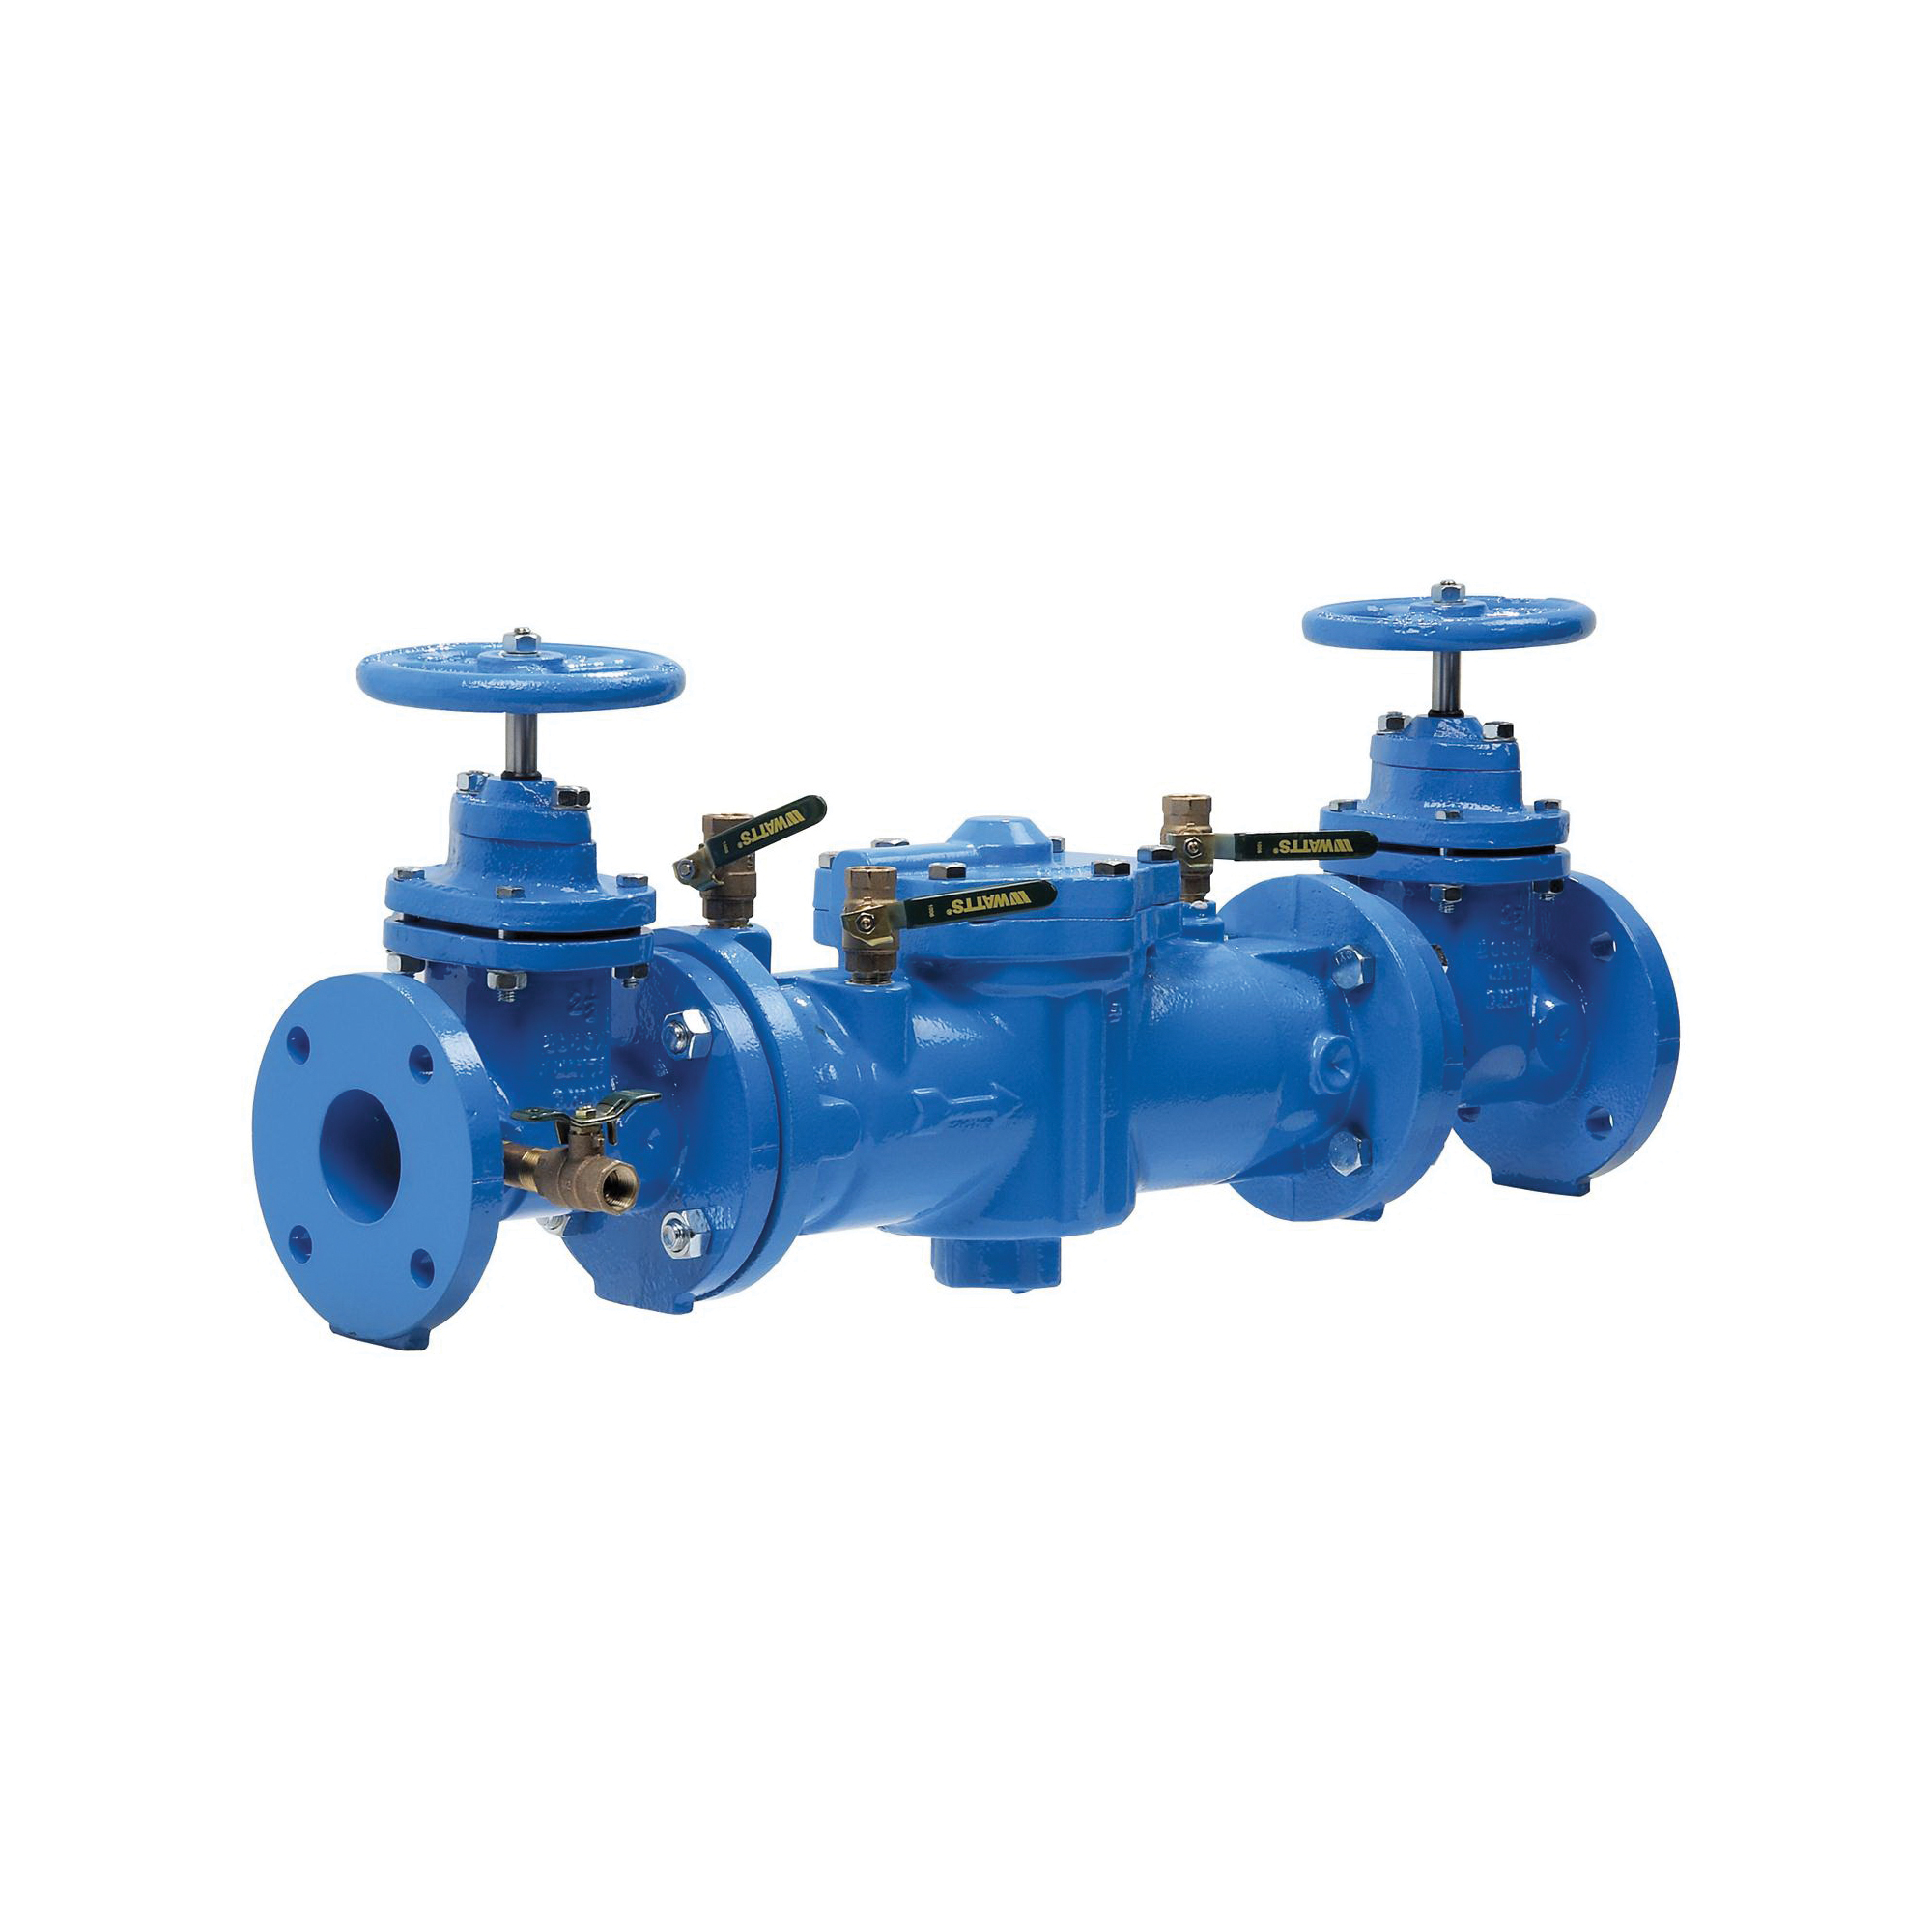 WATTS® 0122614 LF007 Double Check Valve Assembly, 2-1/2 in, Resilient Seated Gate Valve, Cast Iron Body